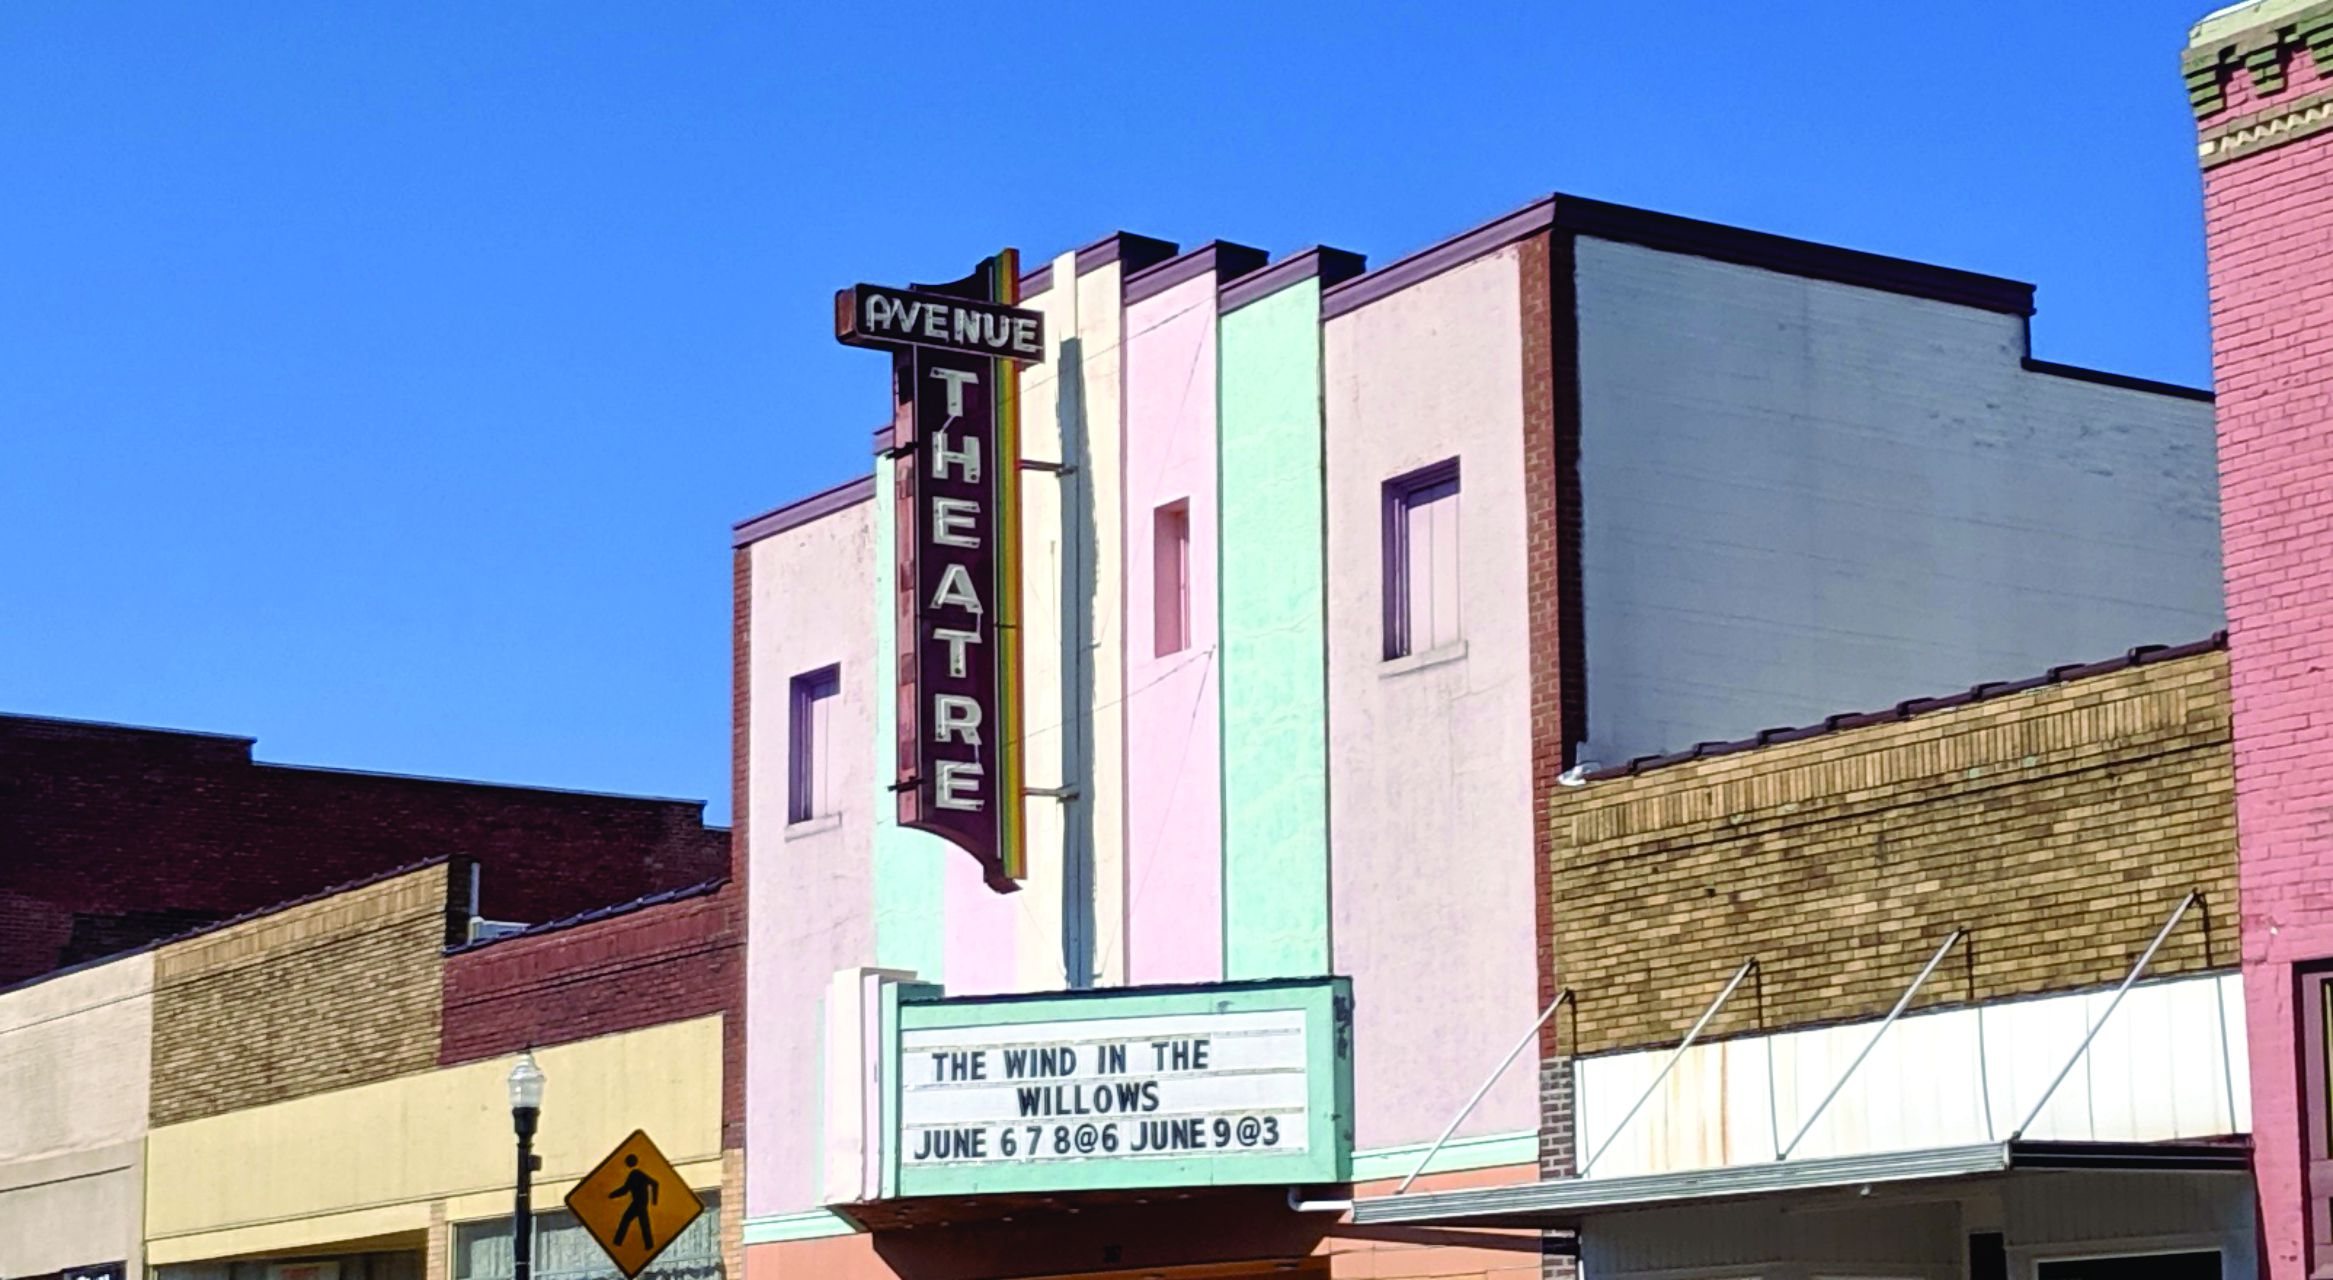 The Avenue Theatre, The Avenue Theatre West Plains Missouri, West Plains Missouri